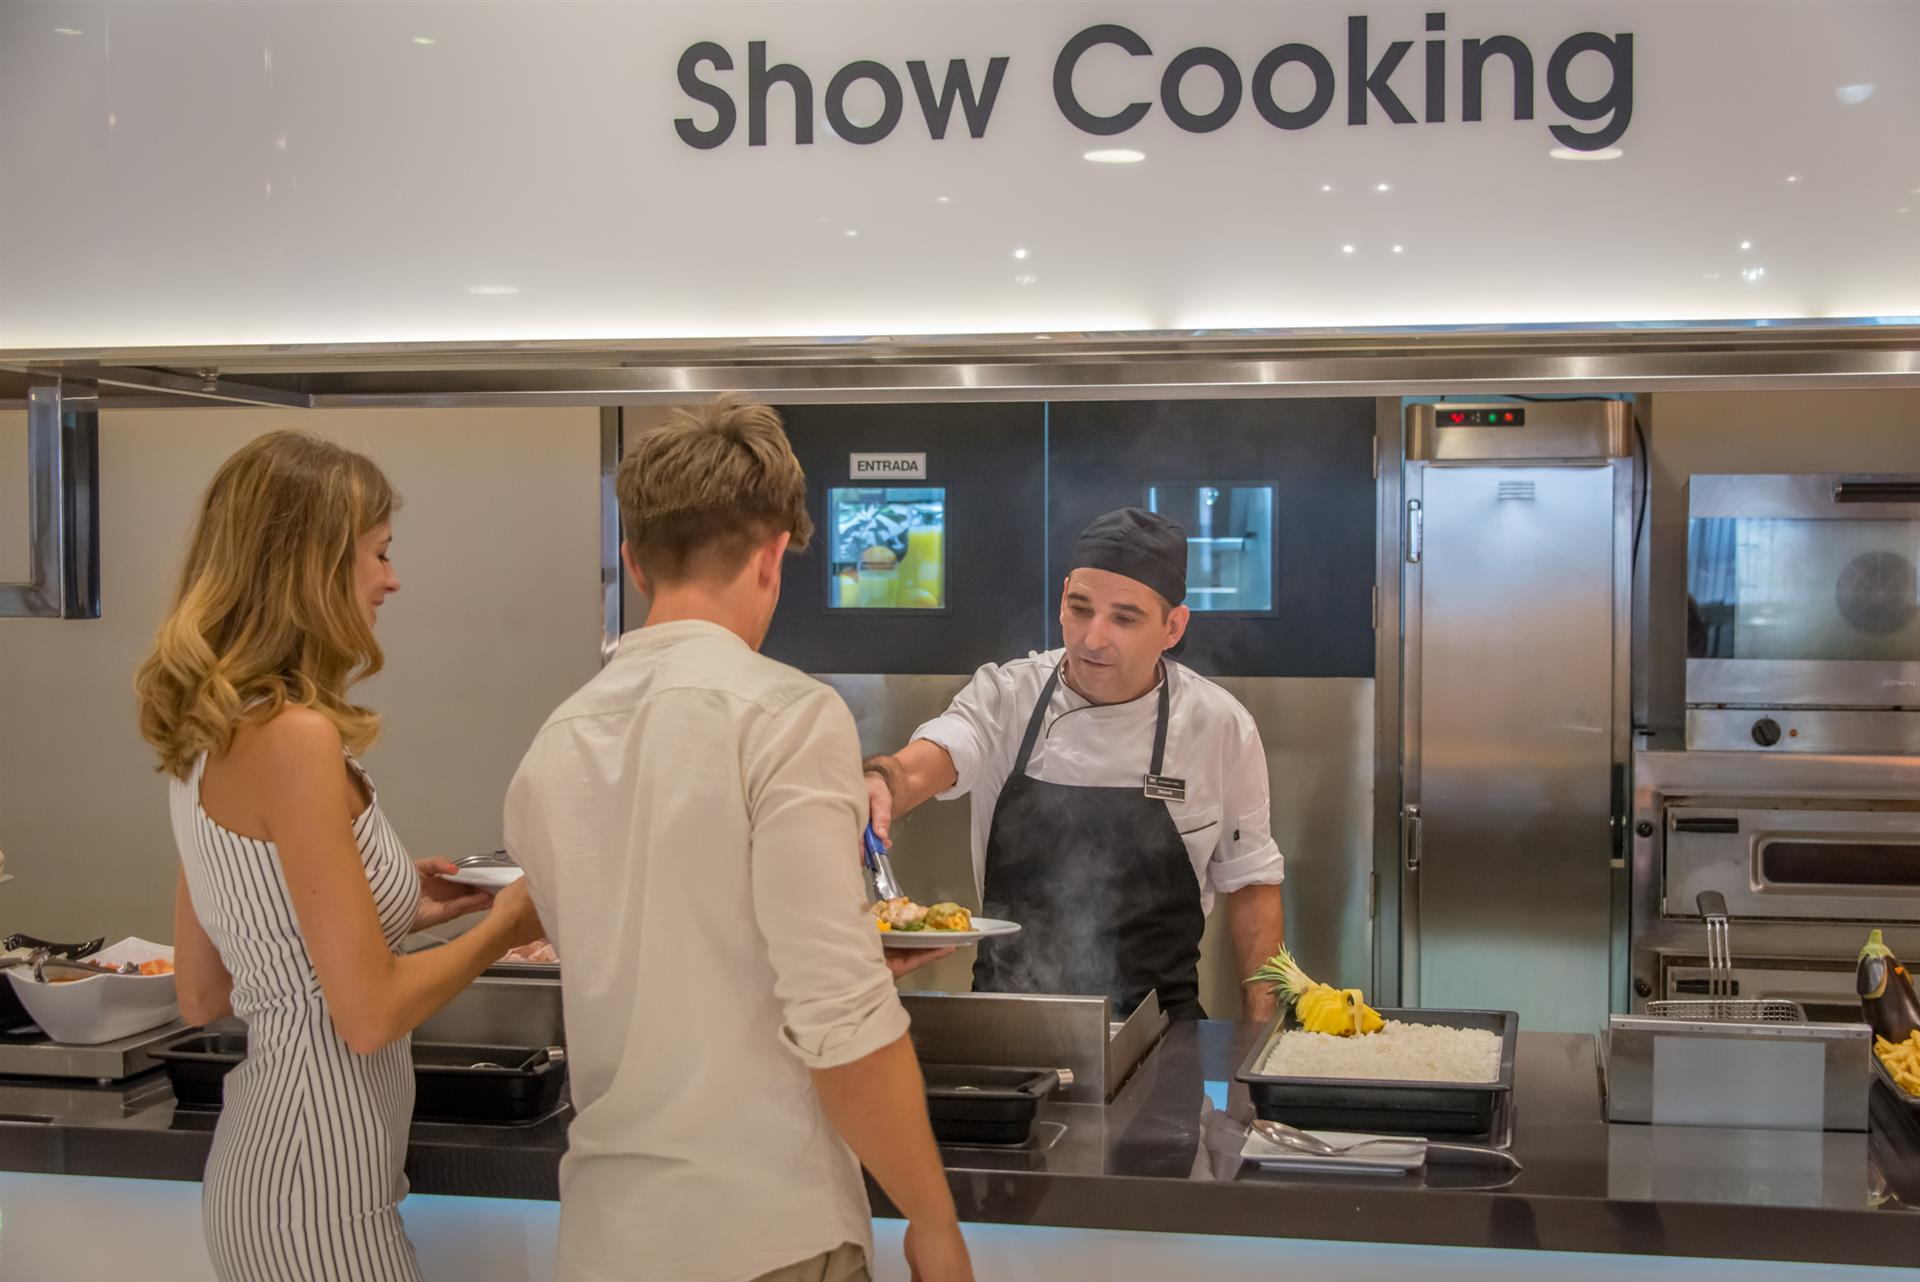 Hotel RH Princesa Show cooking